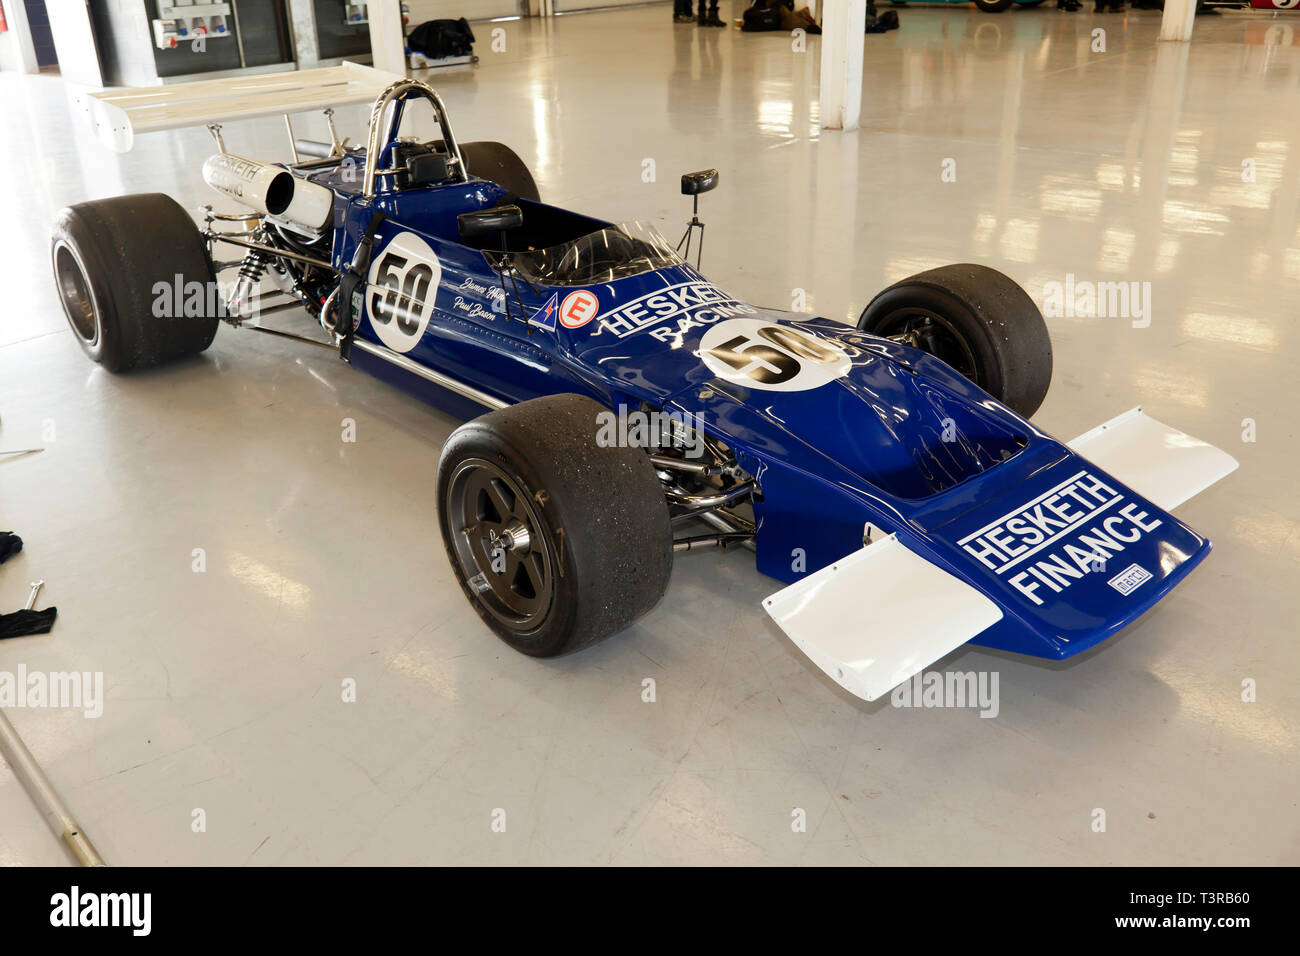 A Blue and White, 1971, March 712 Historic Formula 2 Race Car, once driven by James Hunt, on display in the International Pit garages, during the 2019 Silverstone Classic media Day Stock Photo